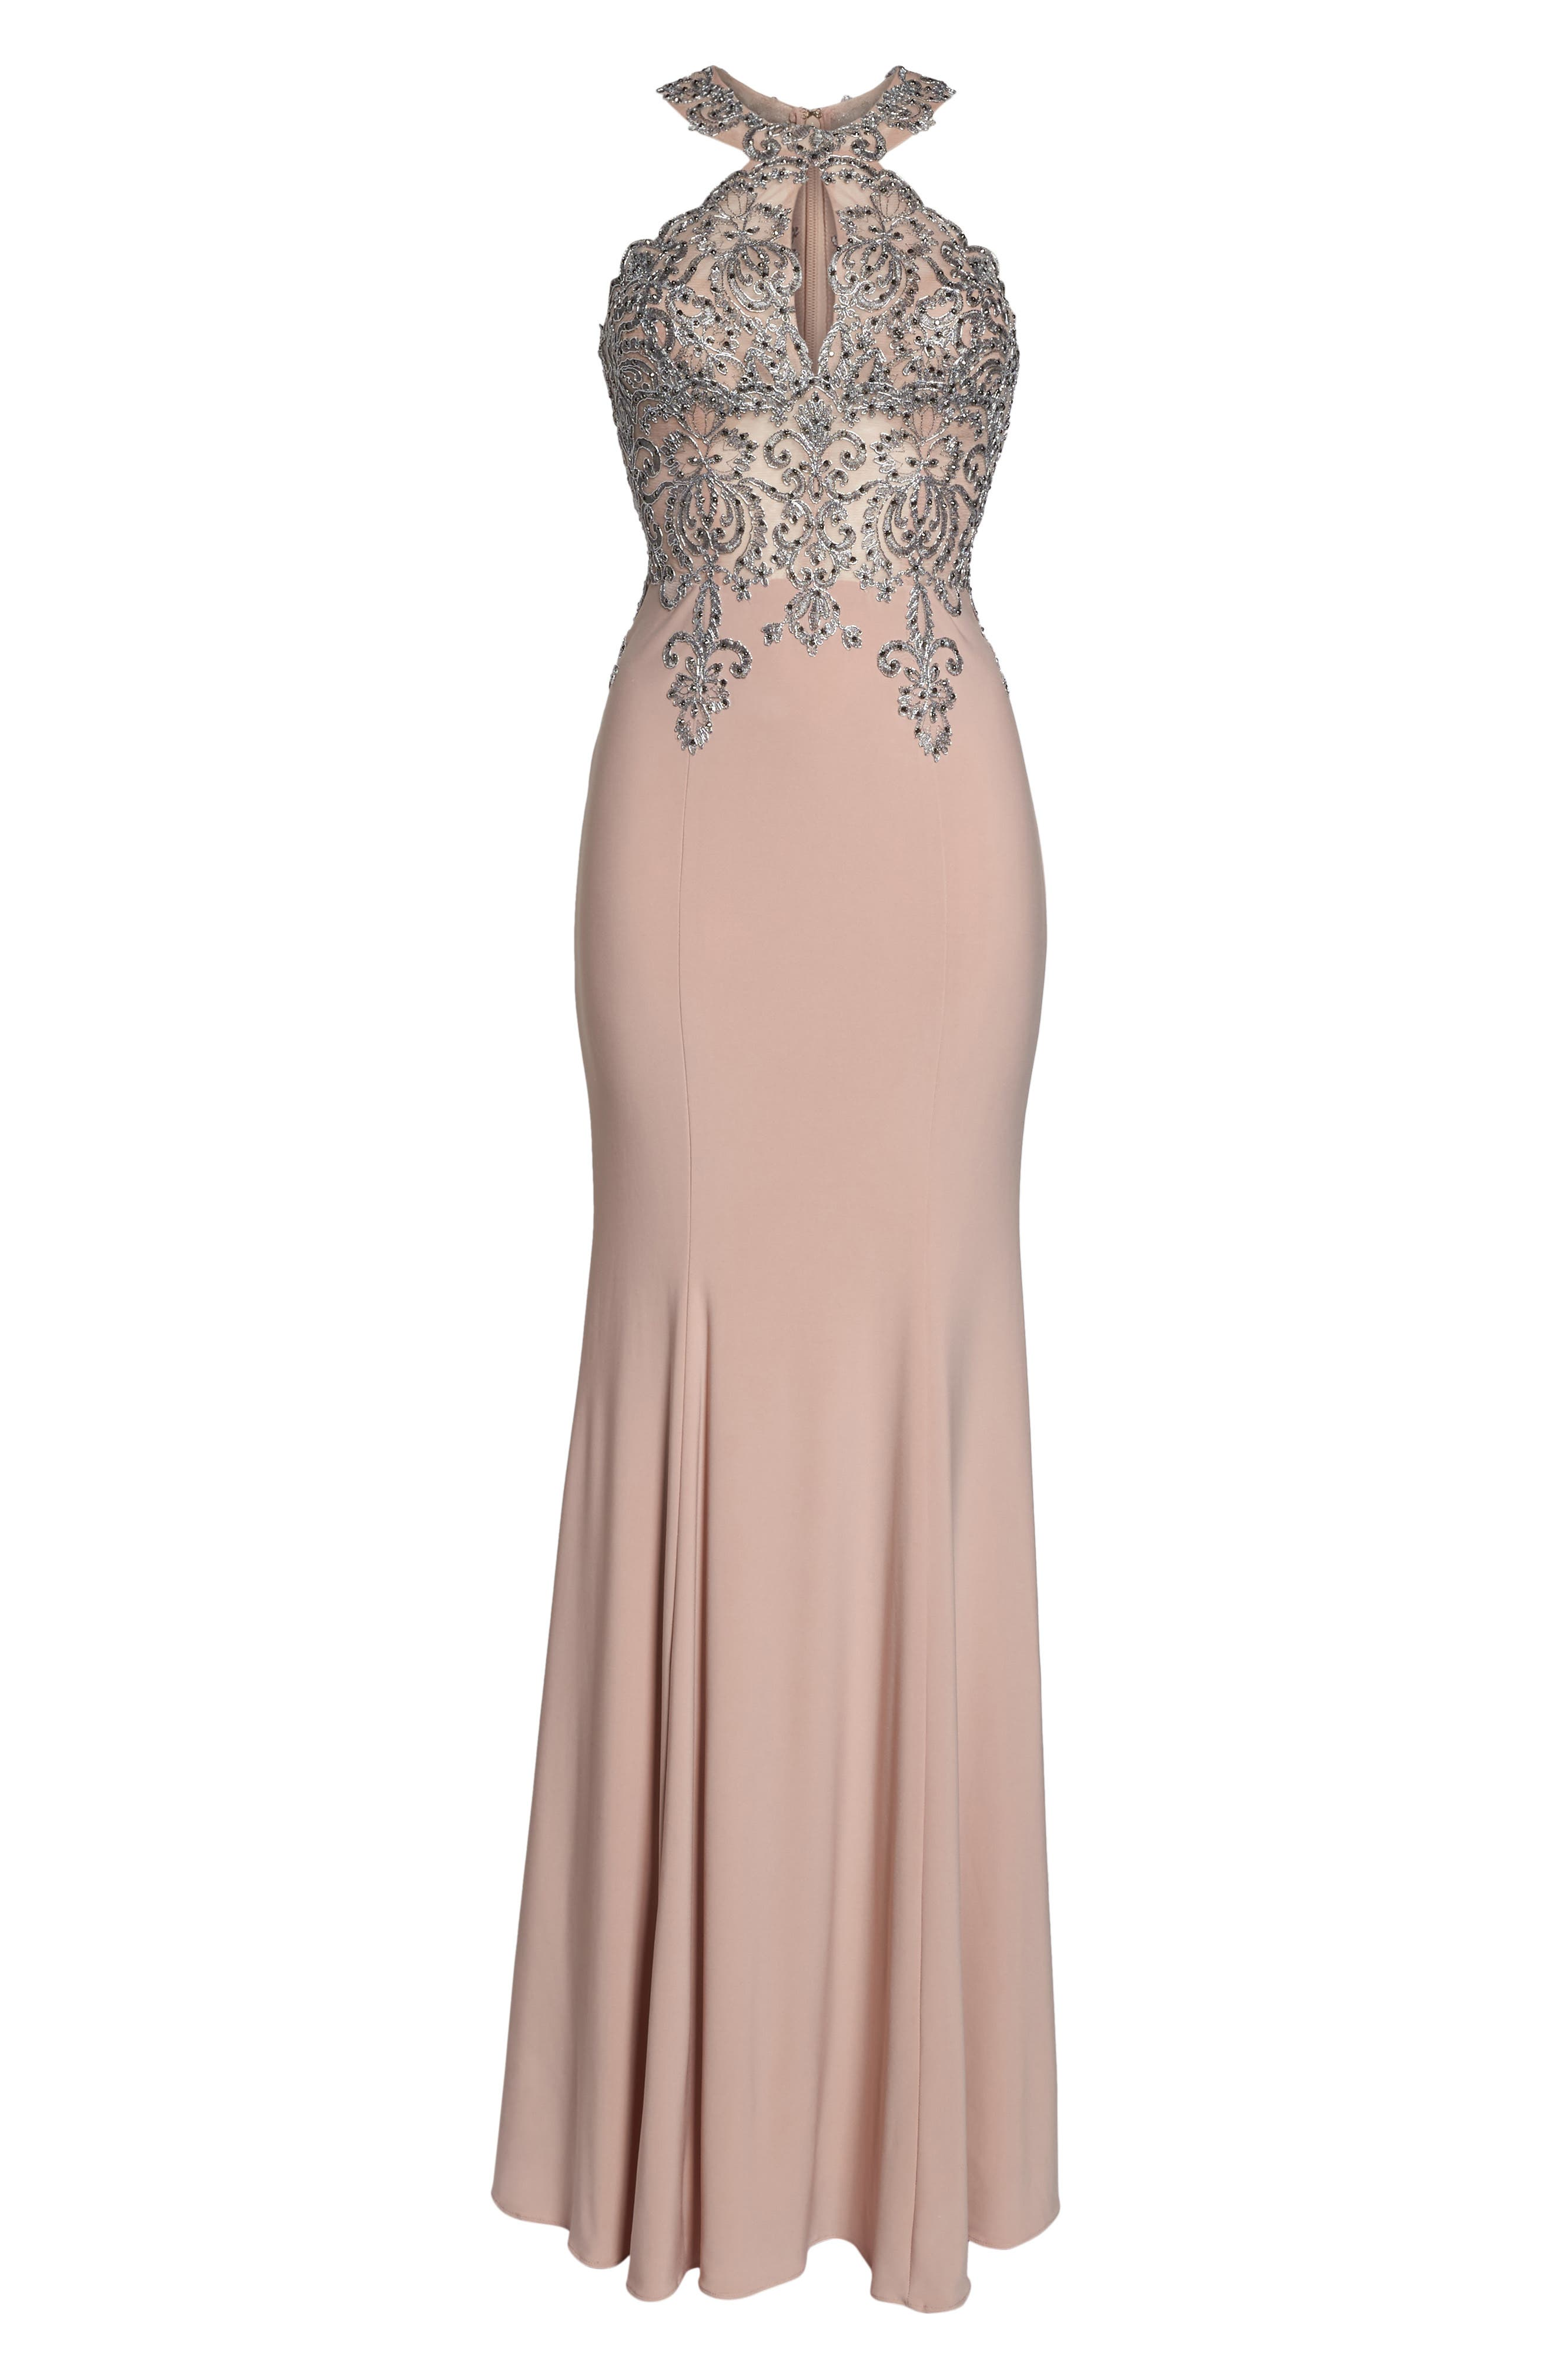 Embellished Embroidered Gown,                             Alternate thumbnail 6, color,                             Blush/ Gunmetal